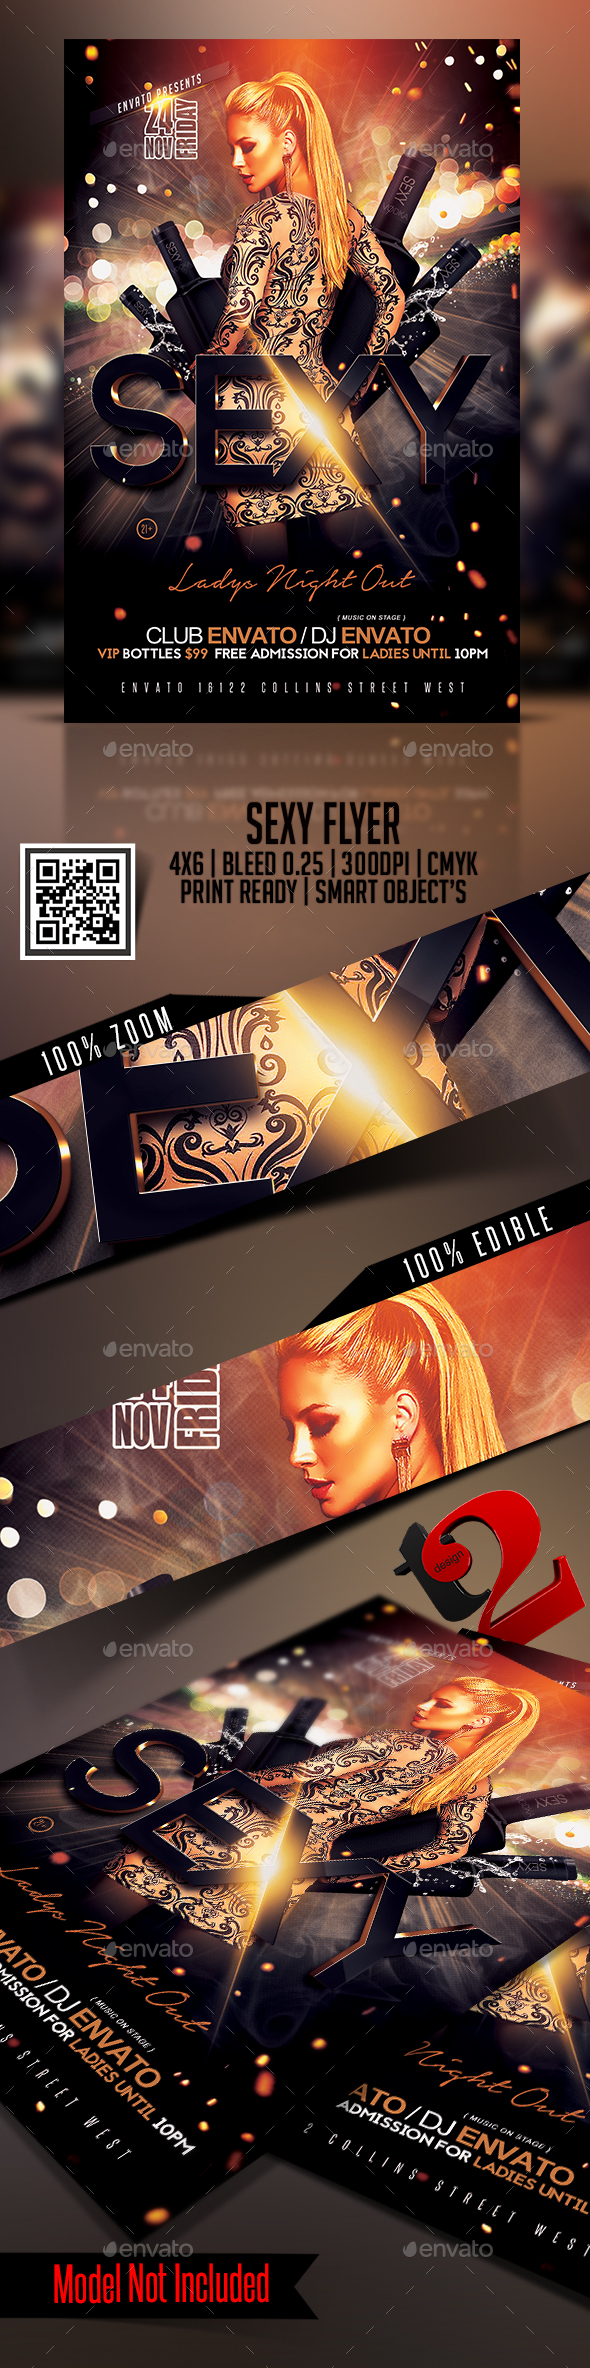 Sexy Lady's Night Out Flyer Templates